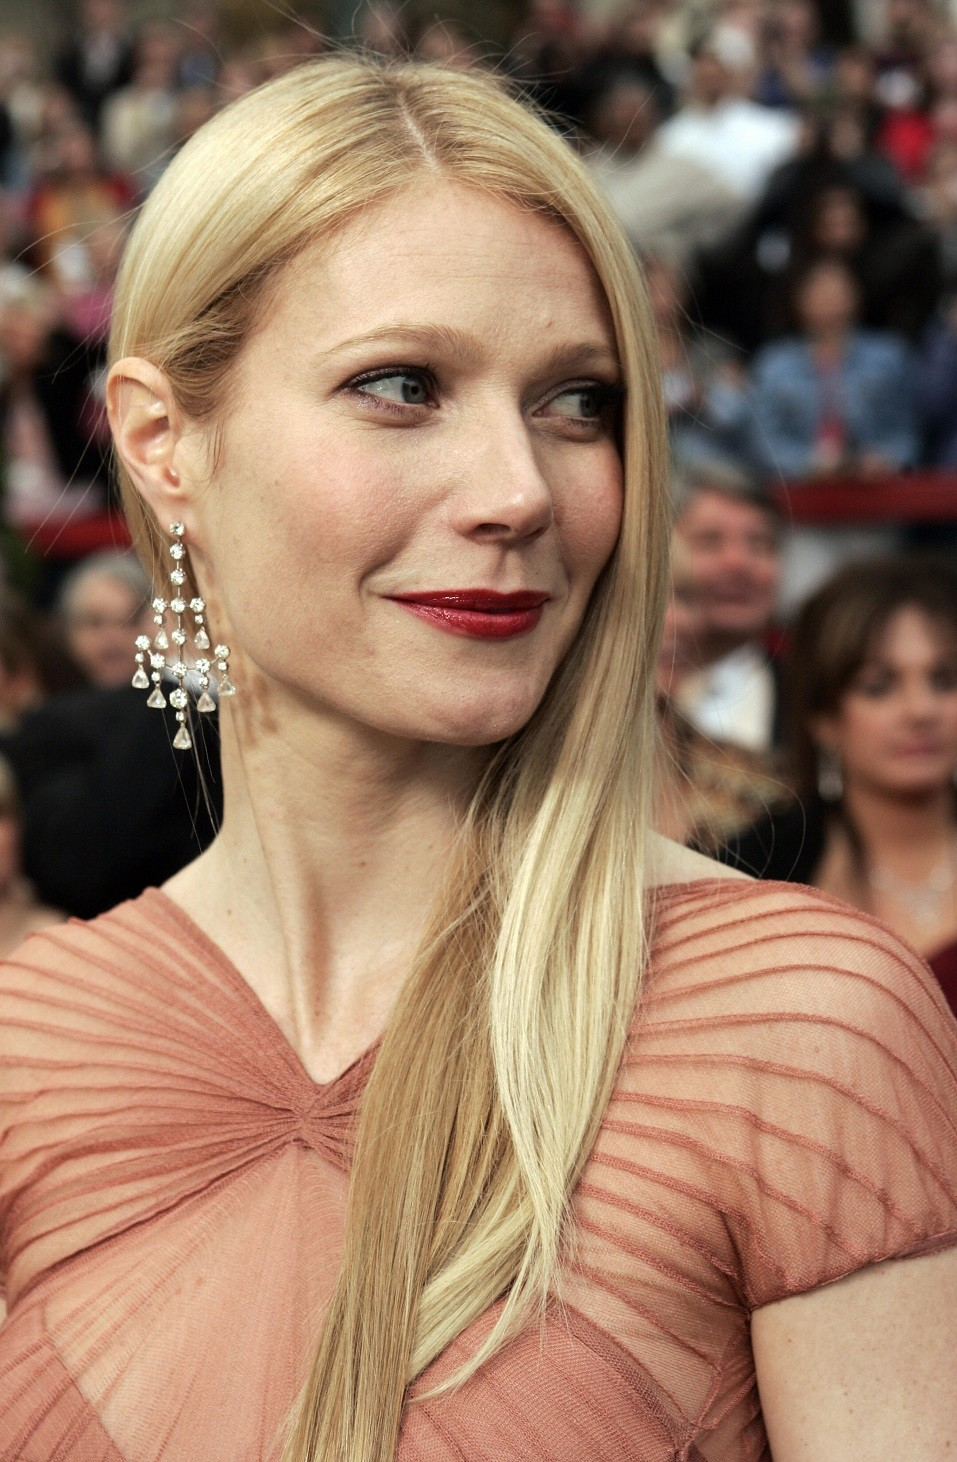 gwyneth paltrow - photo #41